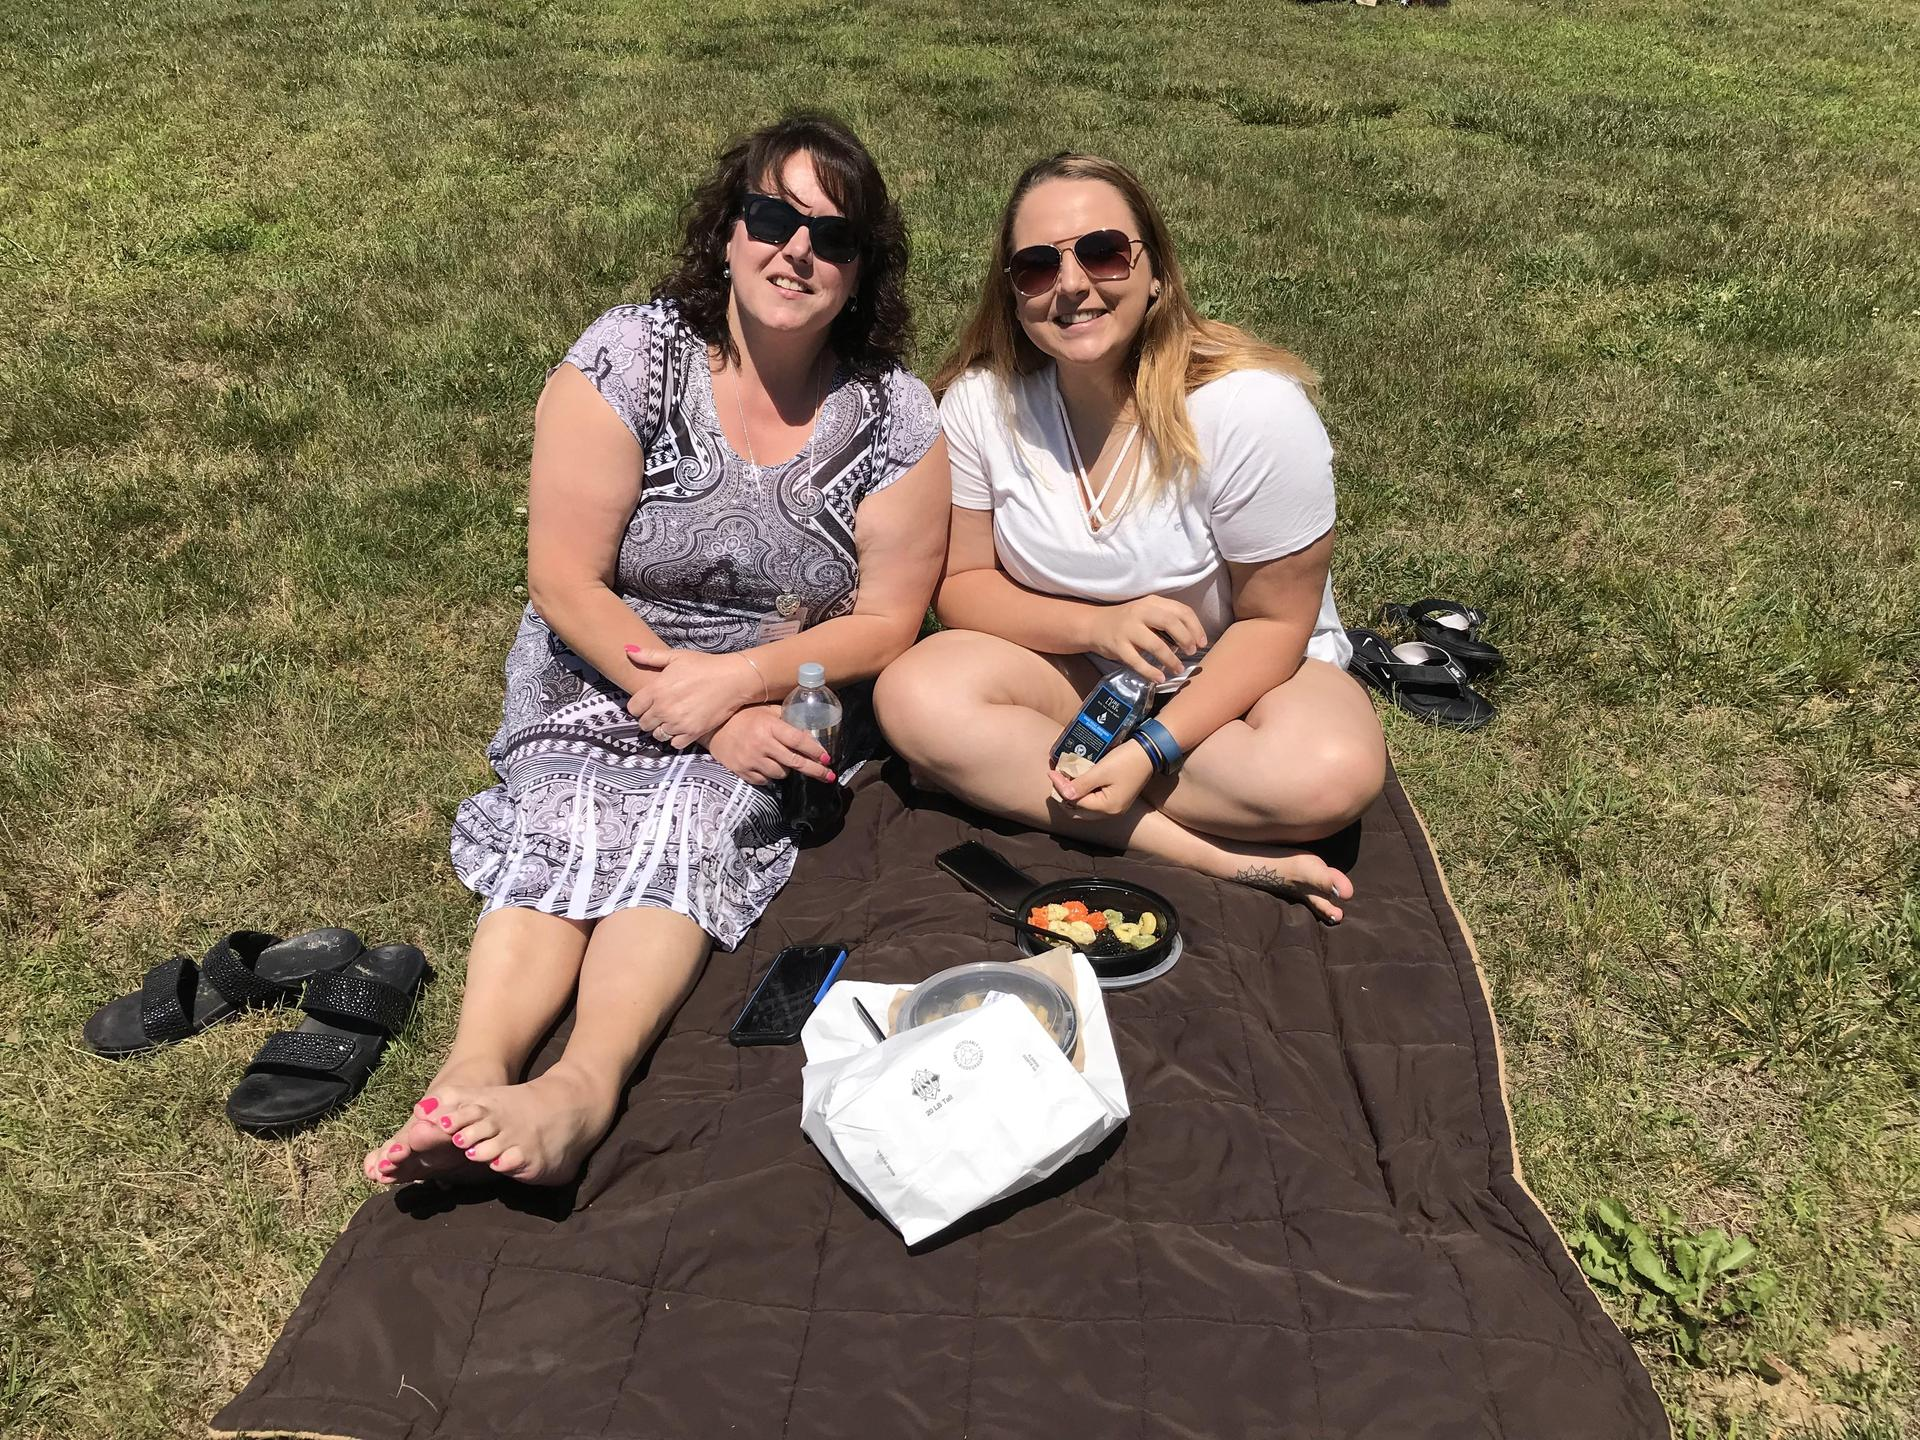 Mrs. Butkus and her daughter picnic outside.